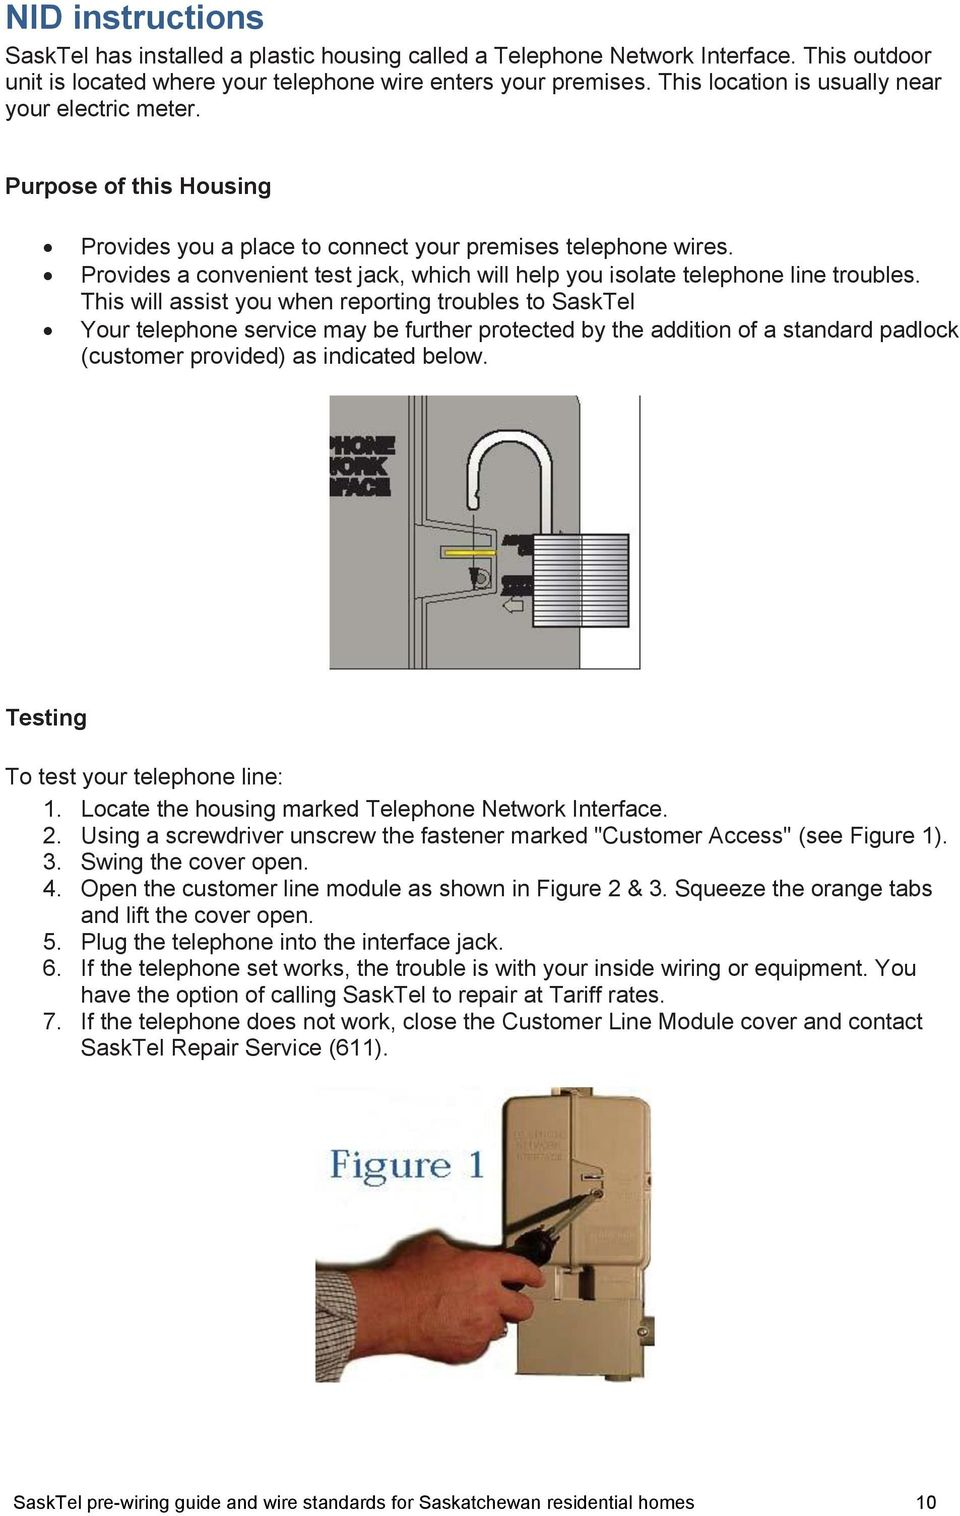 Sasktel Pre Wiring Guide And Wire Standards For Single Family Units Telephone Socket Along With Residential Home Saskatchewan Homes 10 Provides A Convenient Test Jack Which Will Help You Isolate Line Troubles